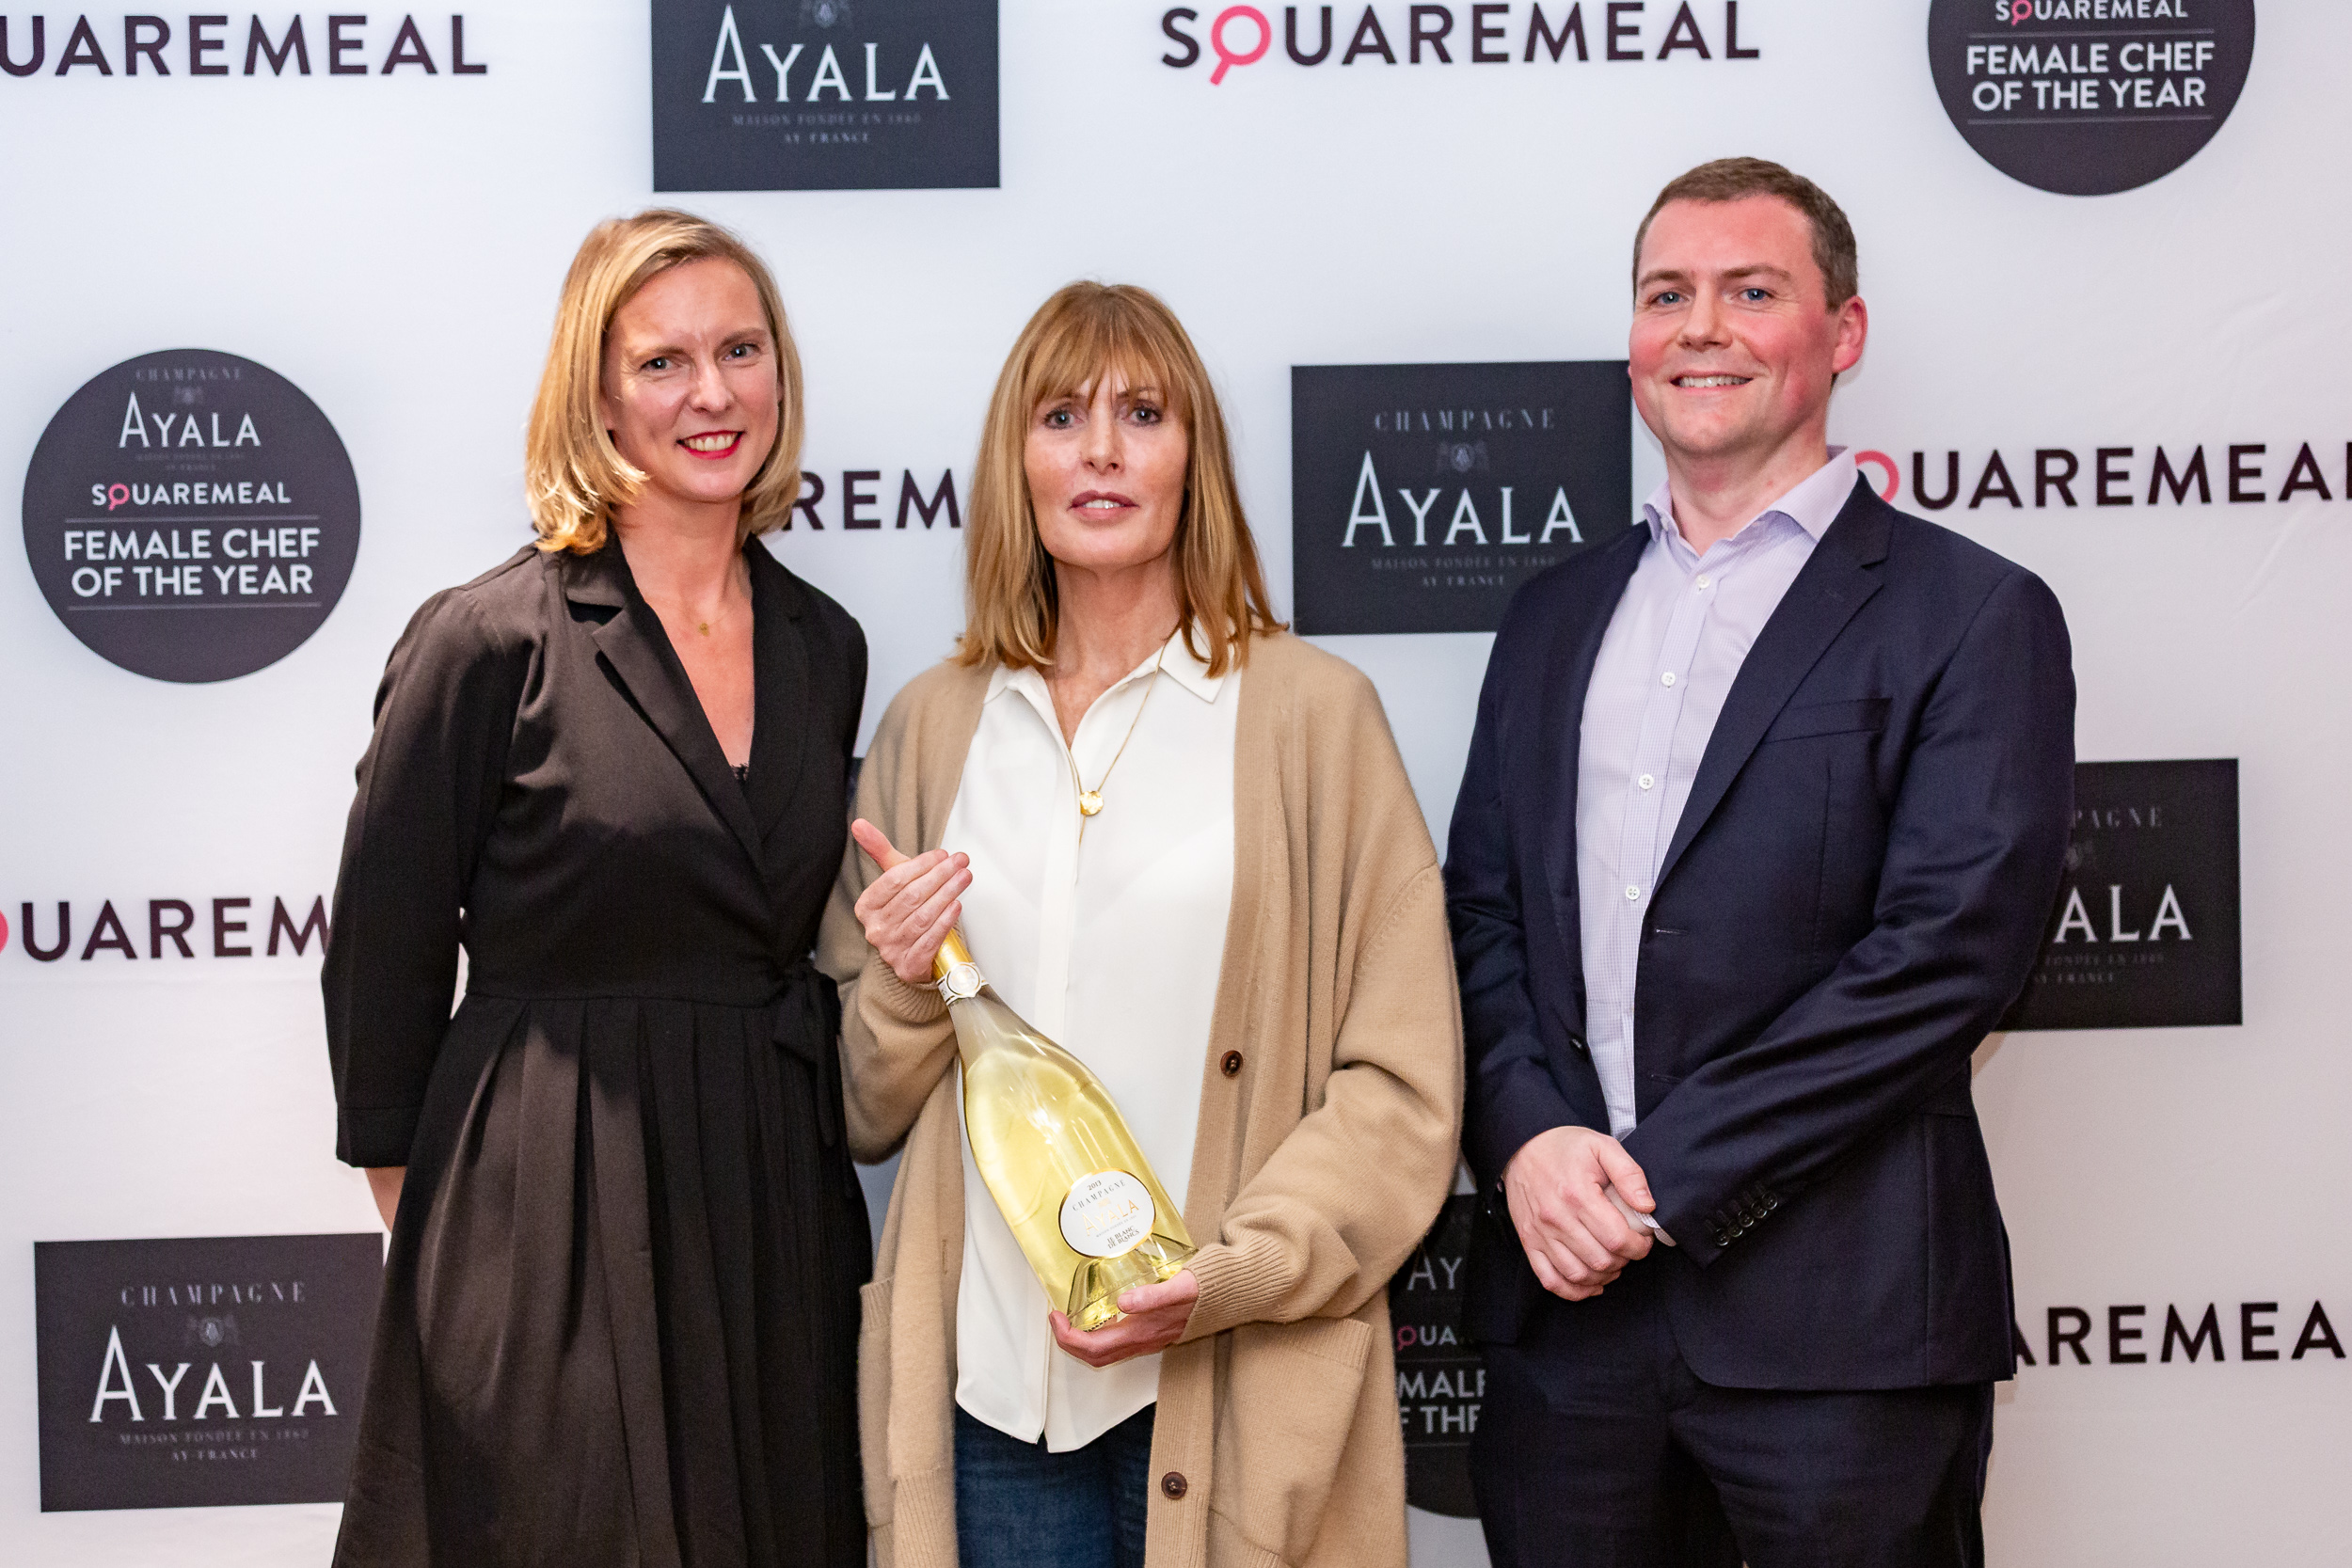 Skye Gyngell is the winner of the 2019 AYALA SquareMeal Female Chef of the Year